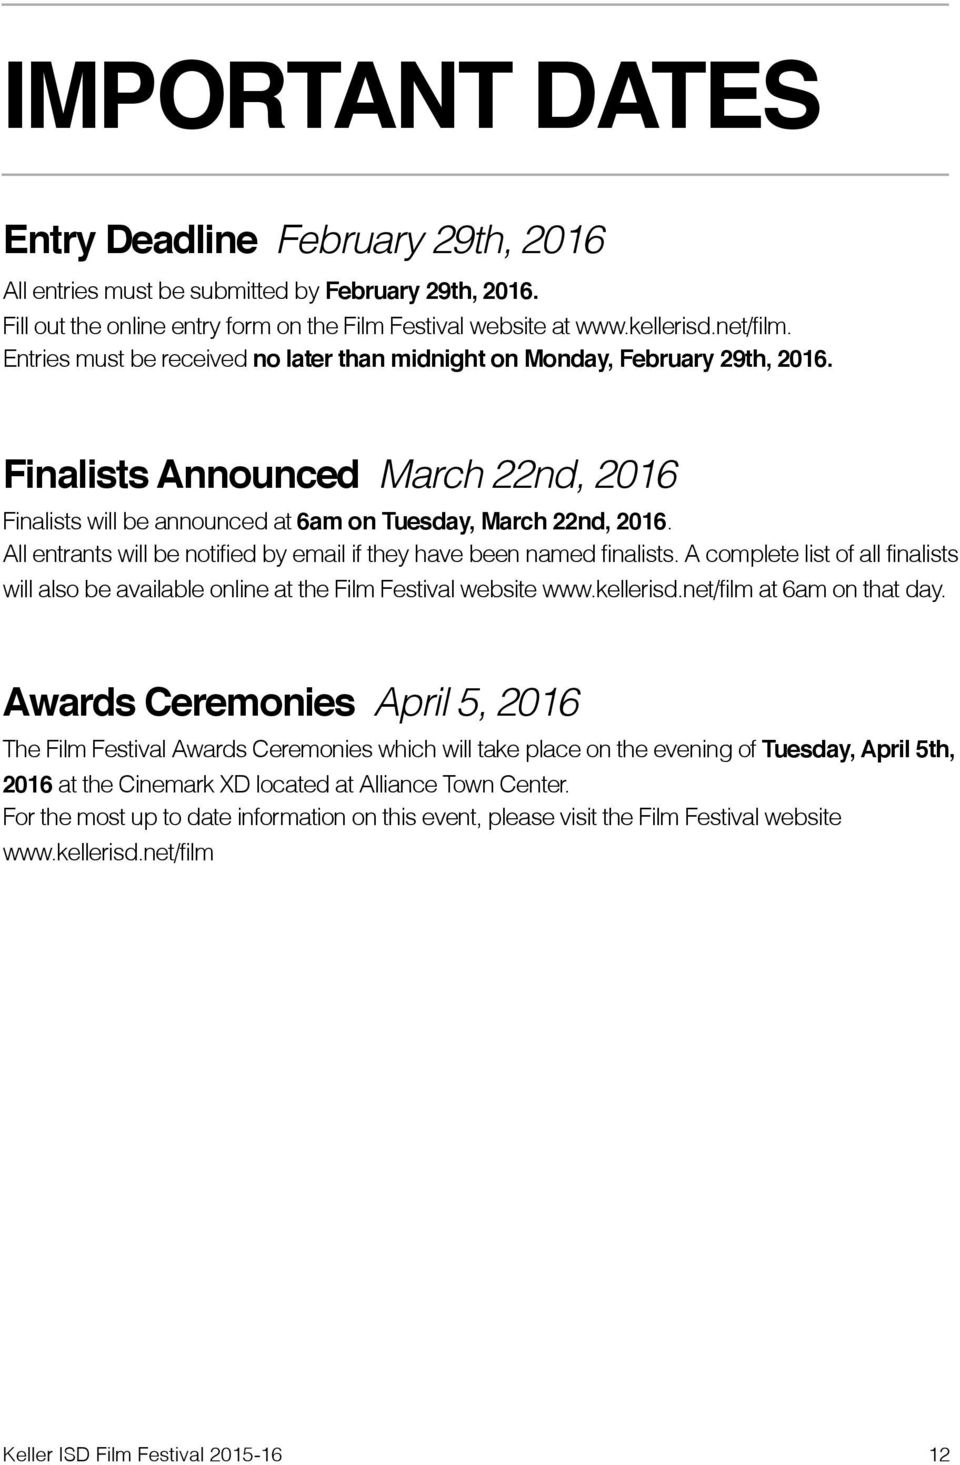 All entrants will be notified by email if they have been named finalists. A complete list of all finalists will also be available online at the Film Festival website www.kellerisd.